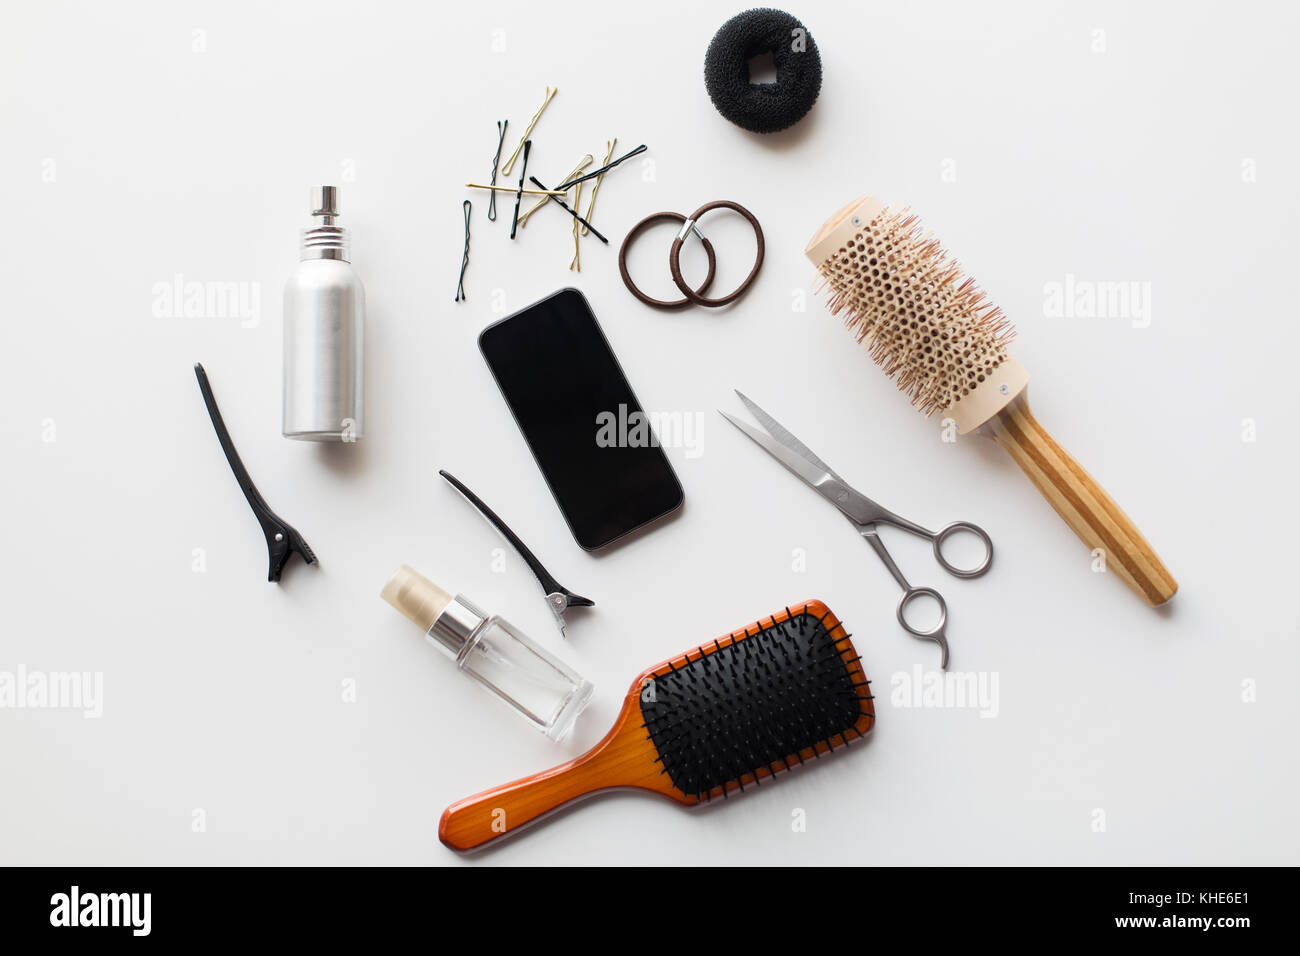 smartphone, scissors, brushes and other hair tools Stock Photo